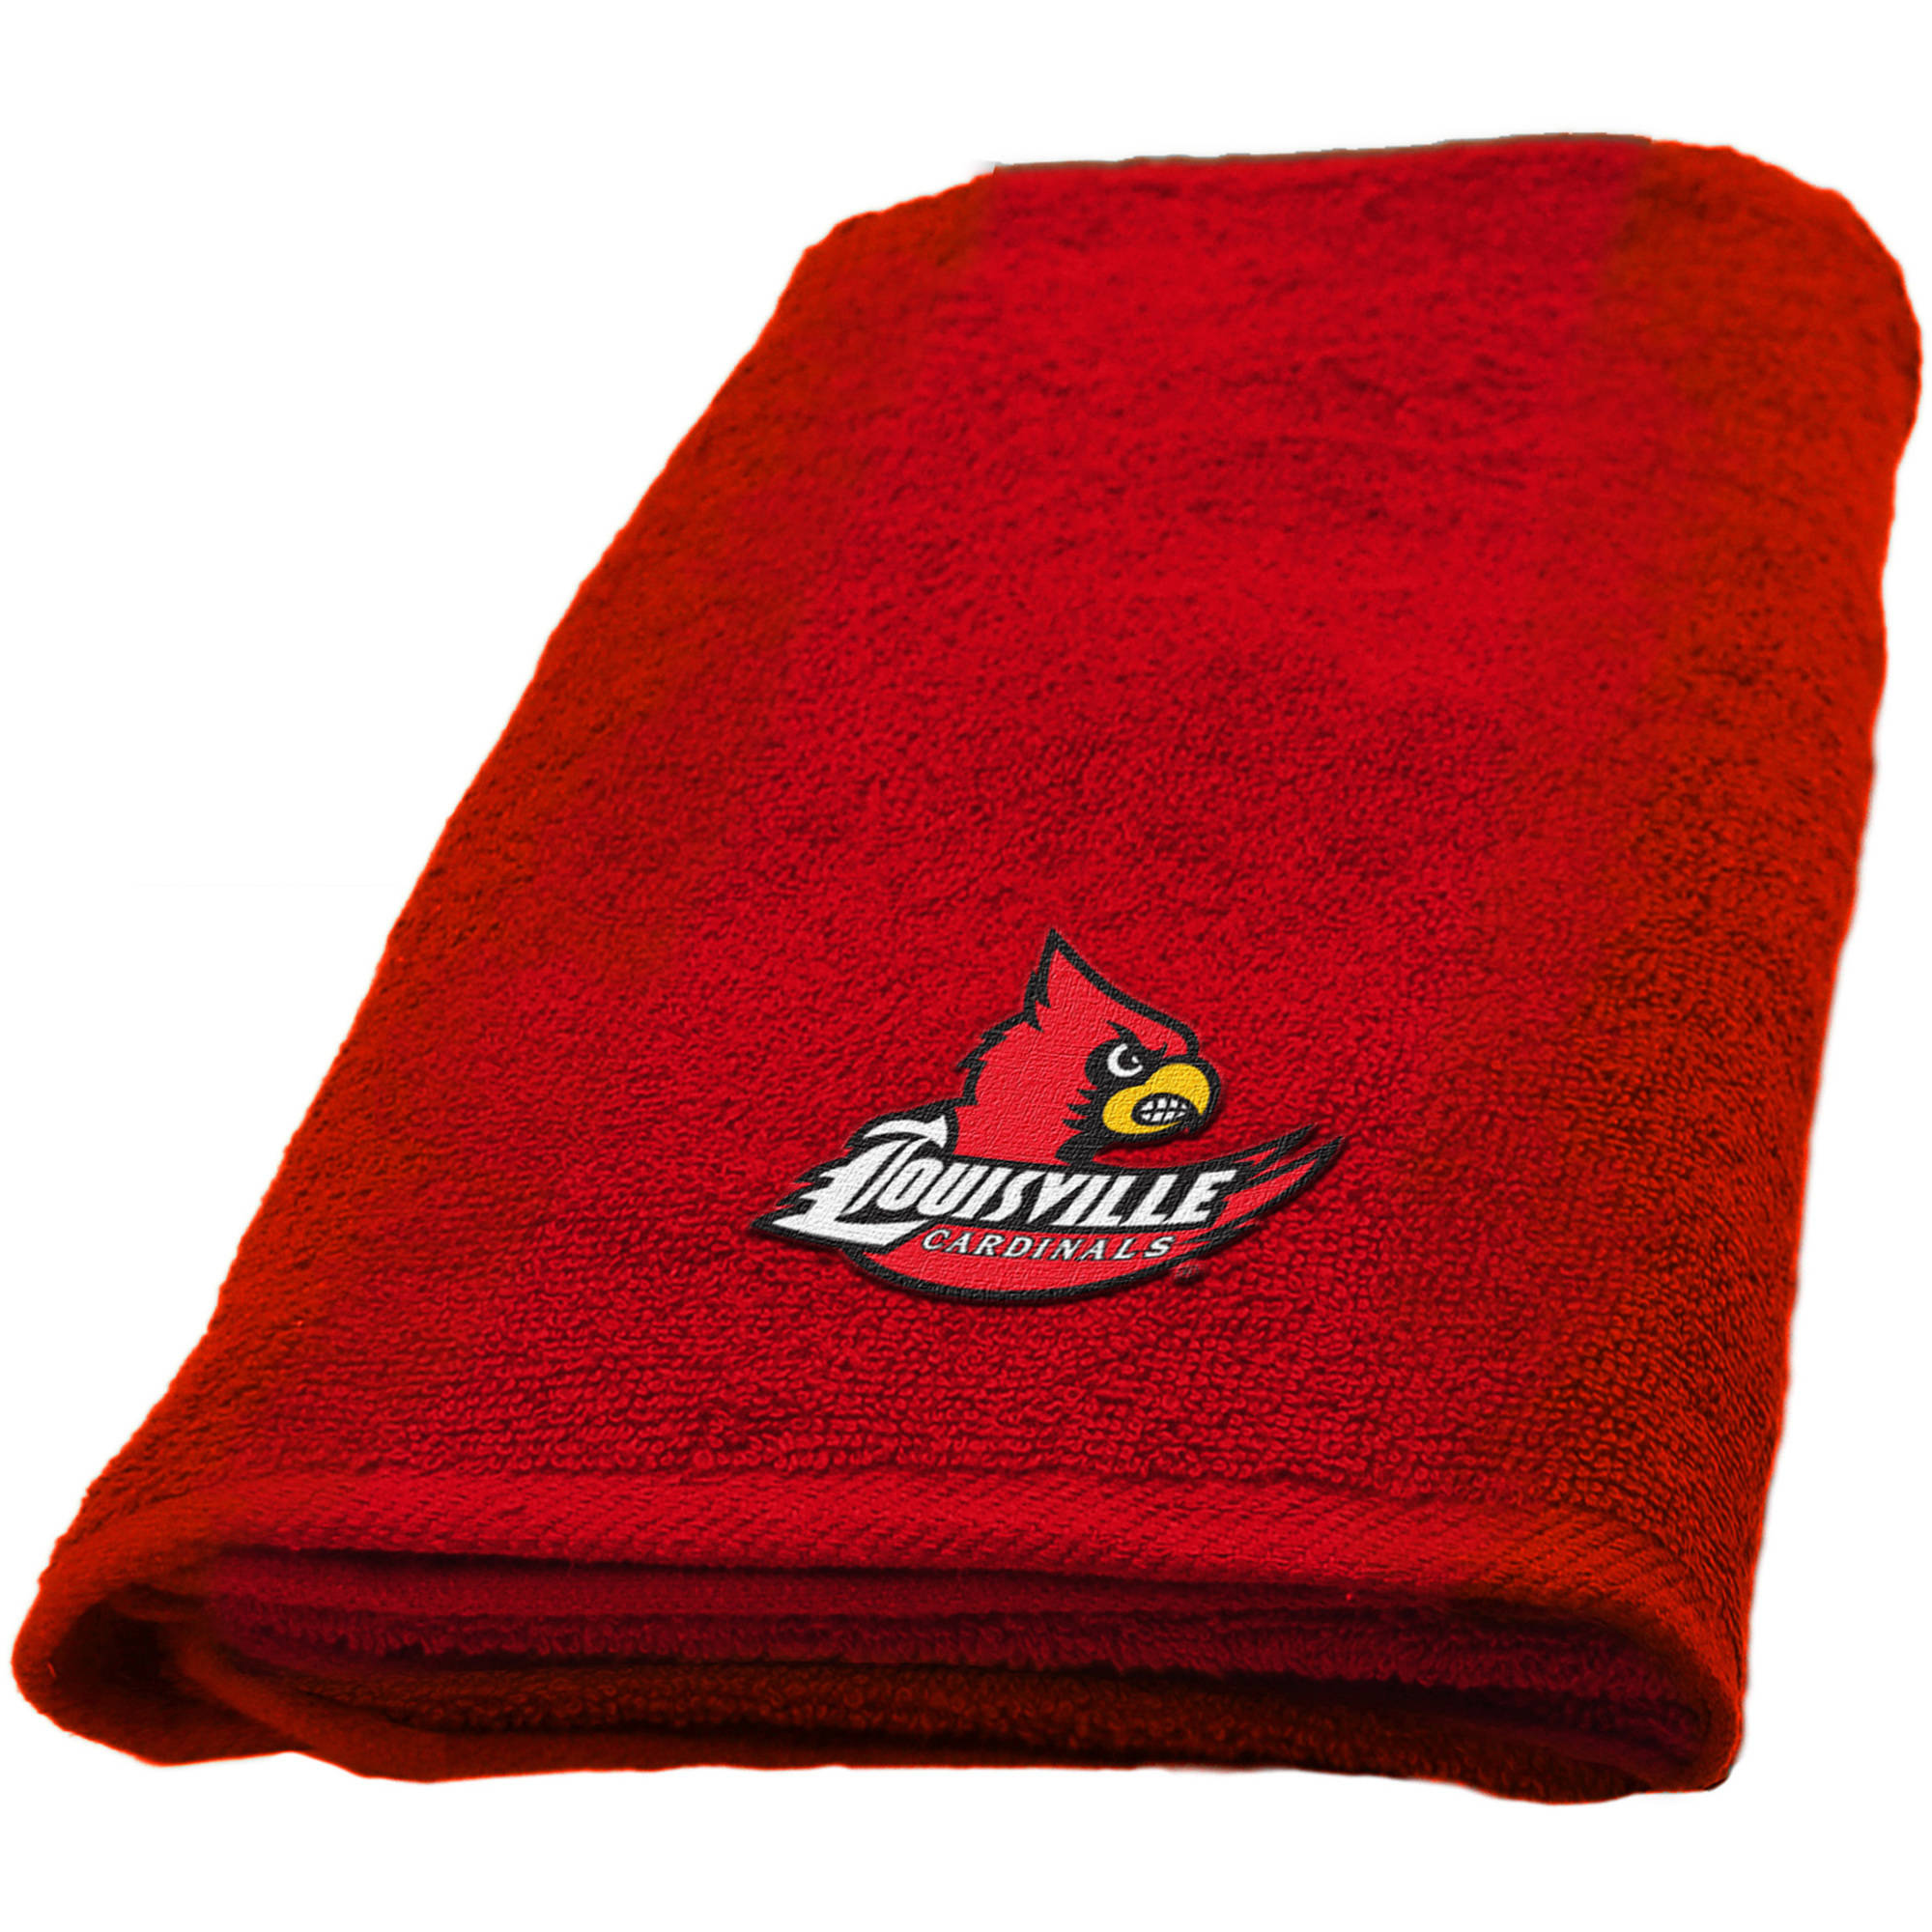 "NCAA Louisville Cardinals 15""x26"" Applique Hand Towel"